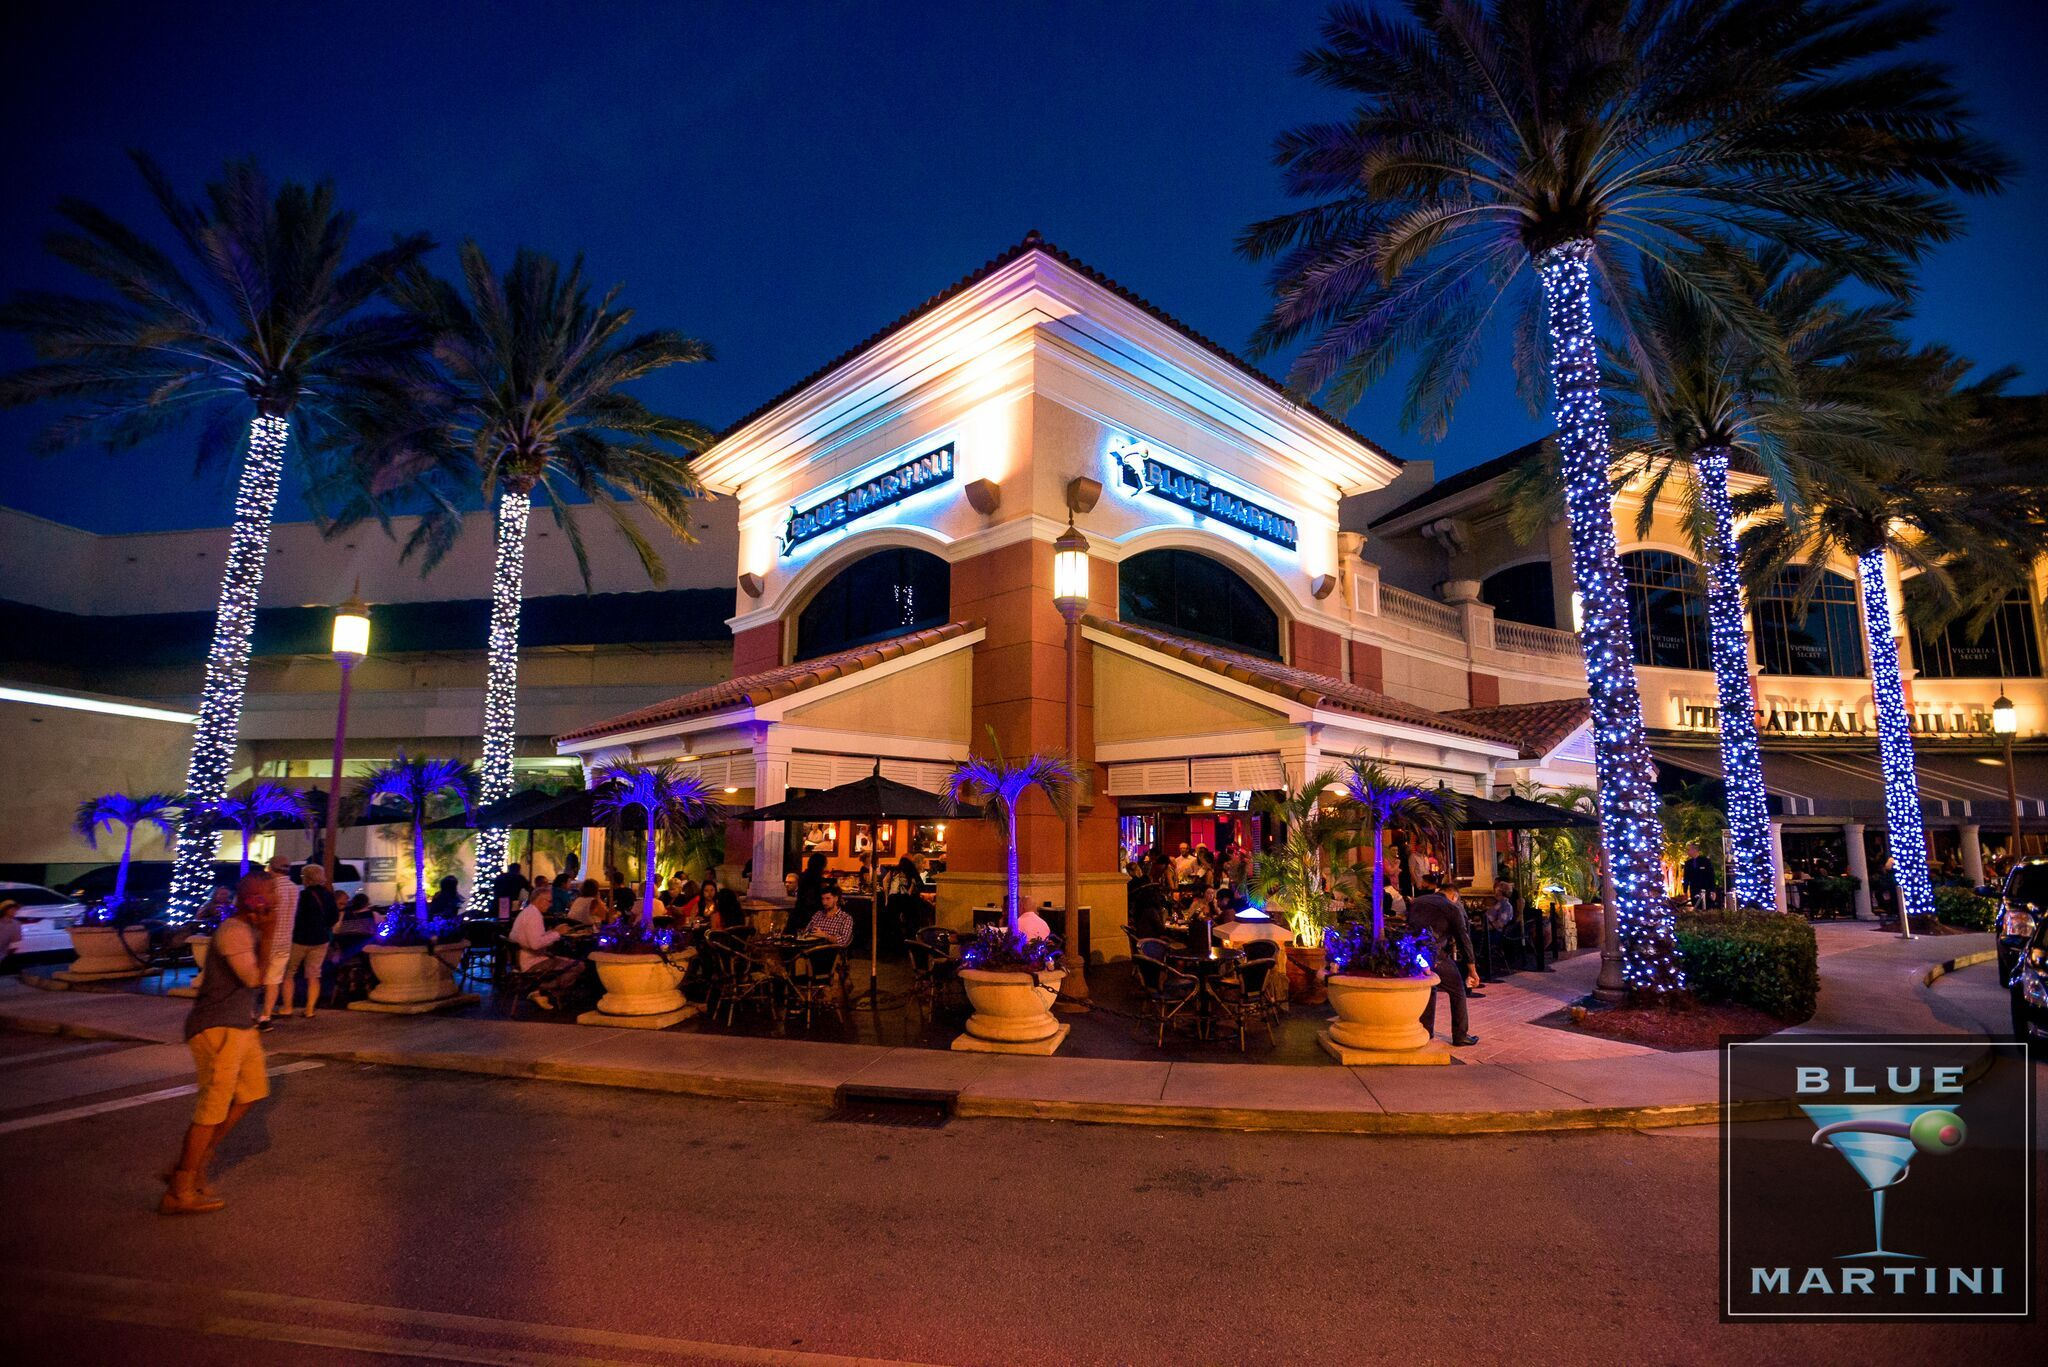 The Best Happy Hour In Fort Lauderdale Blue Martini Blue Martini Best Happy Hour Fort Lauderdale